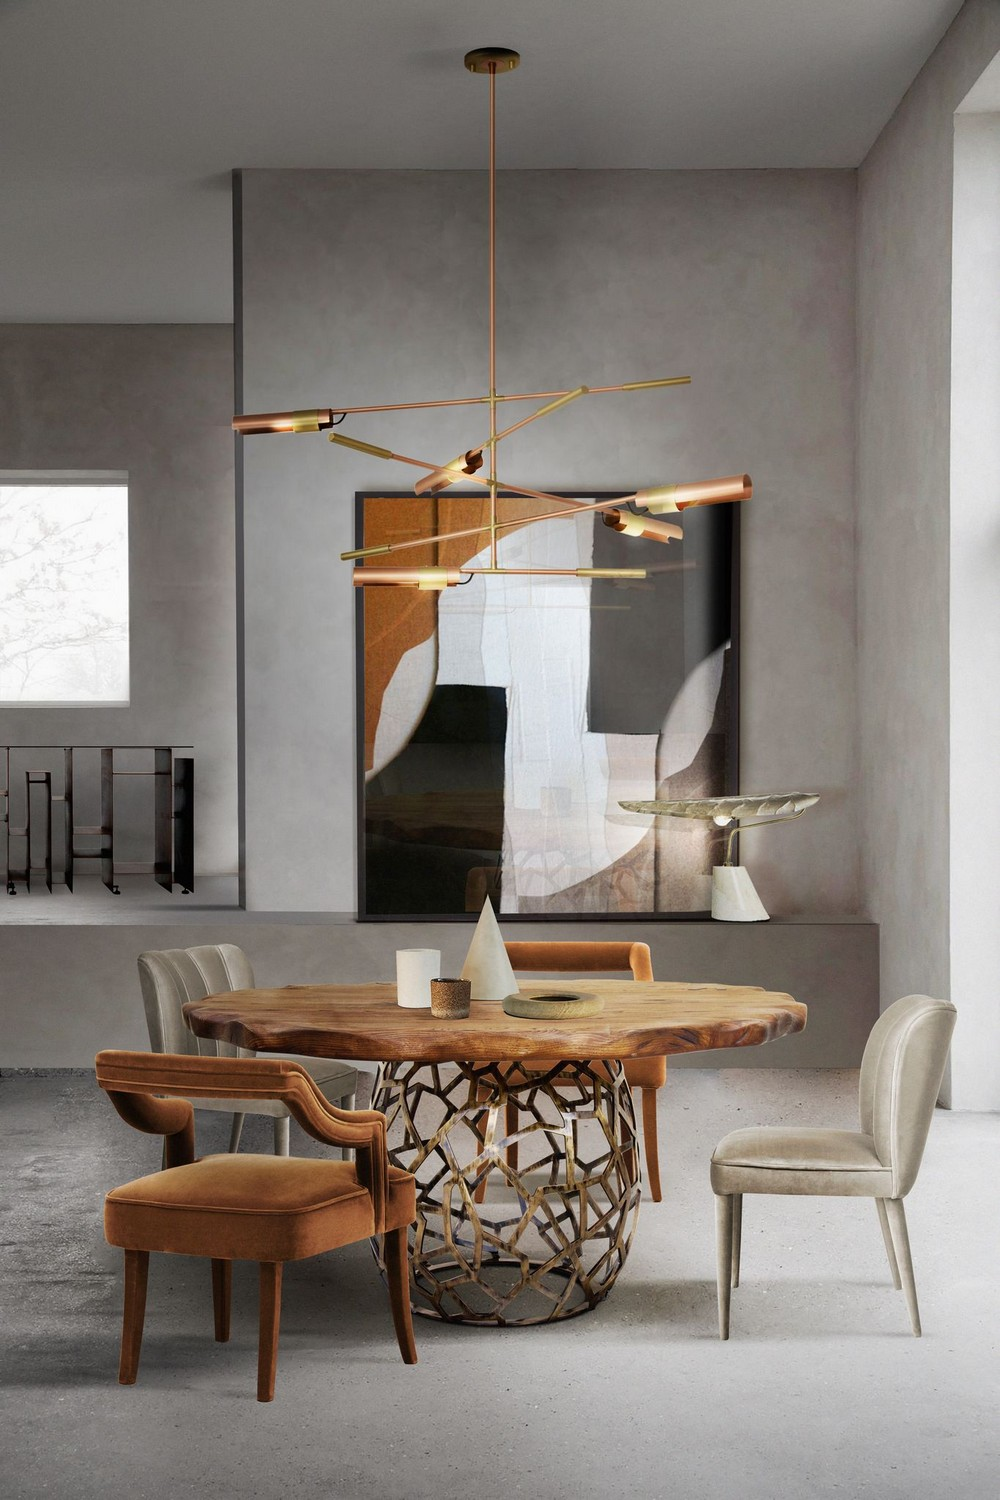 dining room ideas Design That's Barely There: Dining Room Ideas With Nude Tones ruwMIDbU